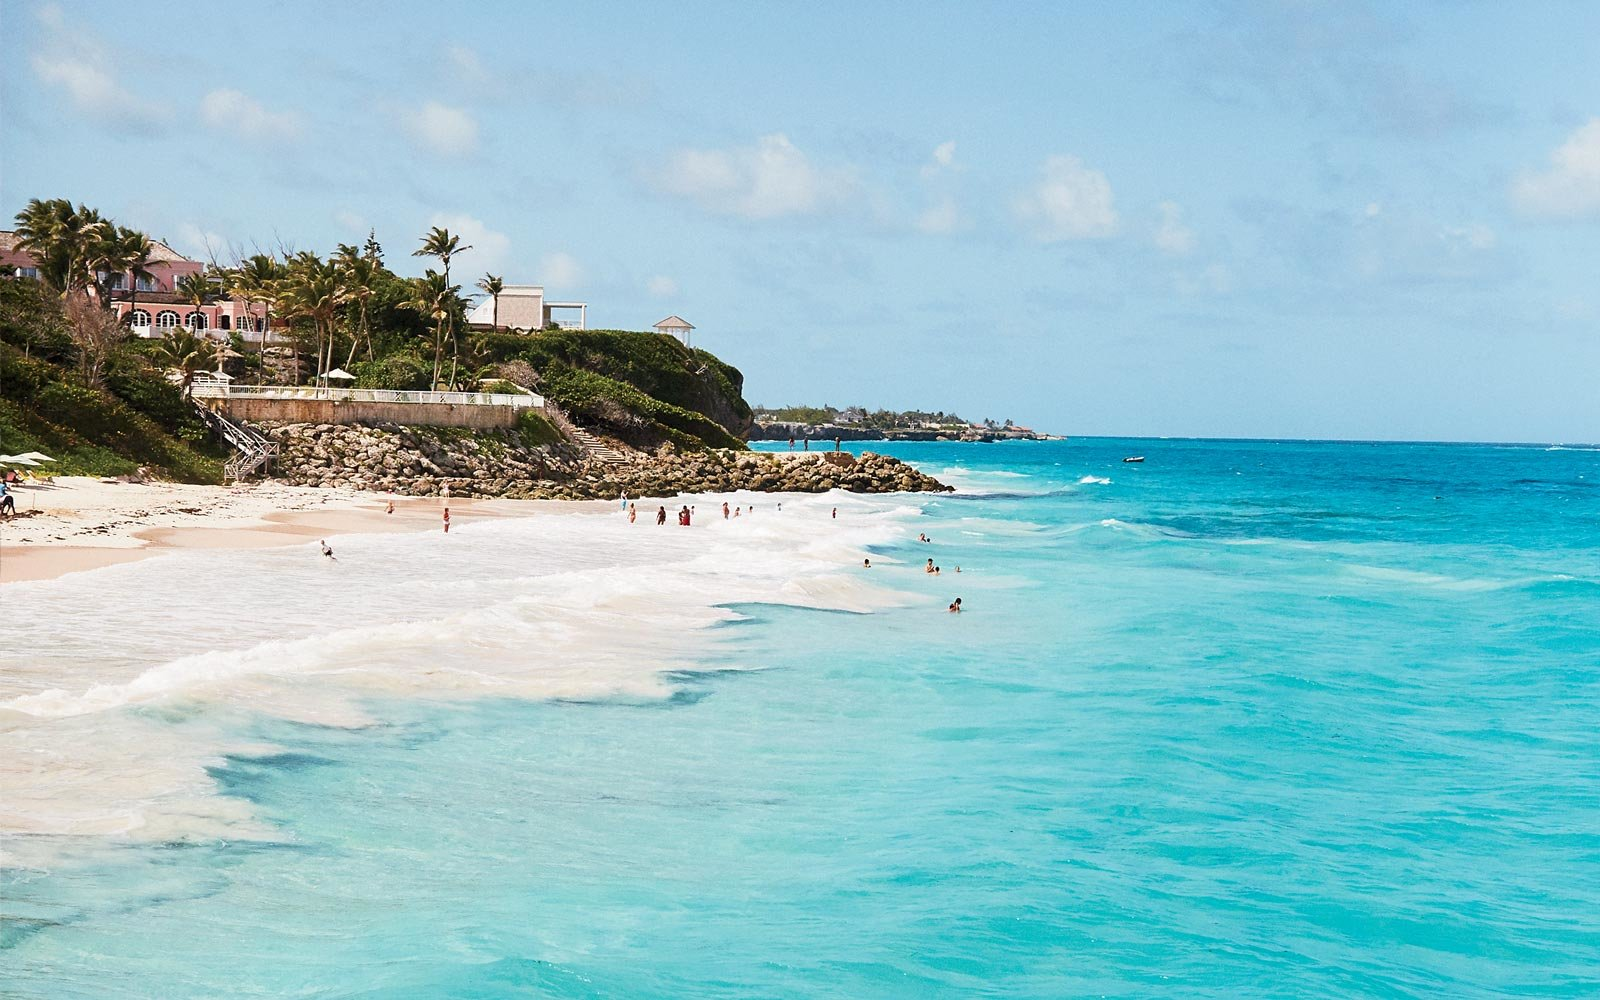 A sunny day at Crane Beach, in Barbados